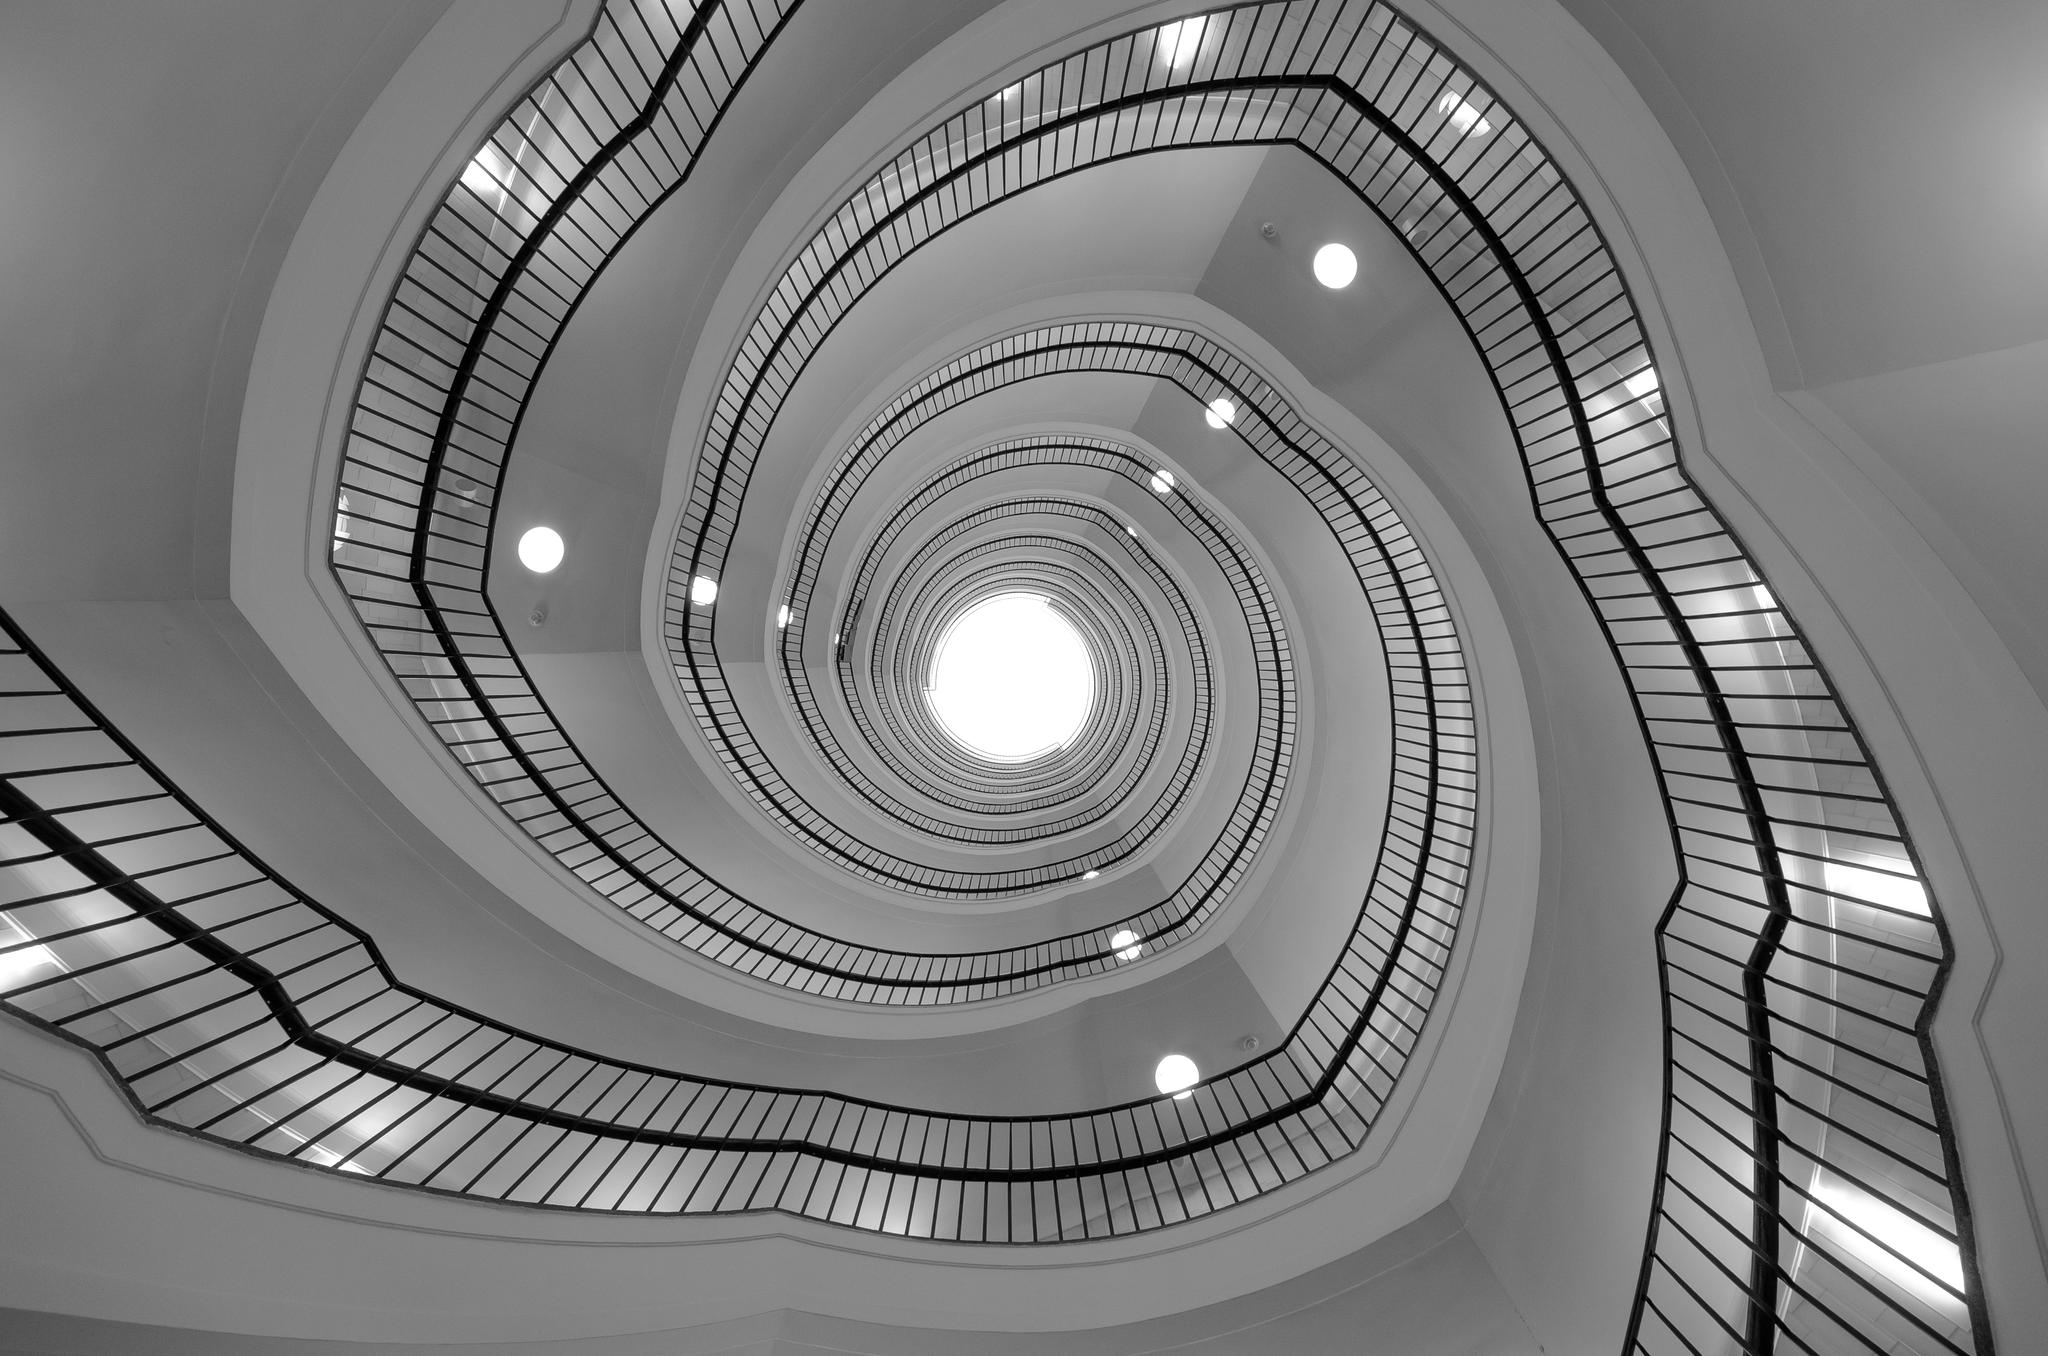 Awesome Spiral_10